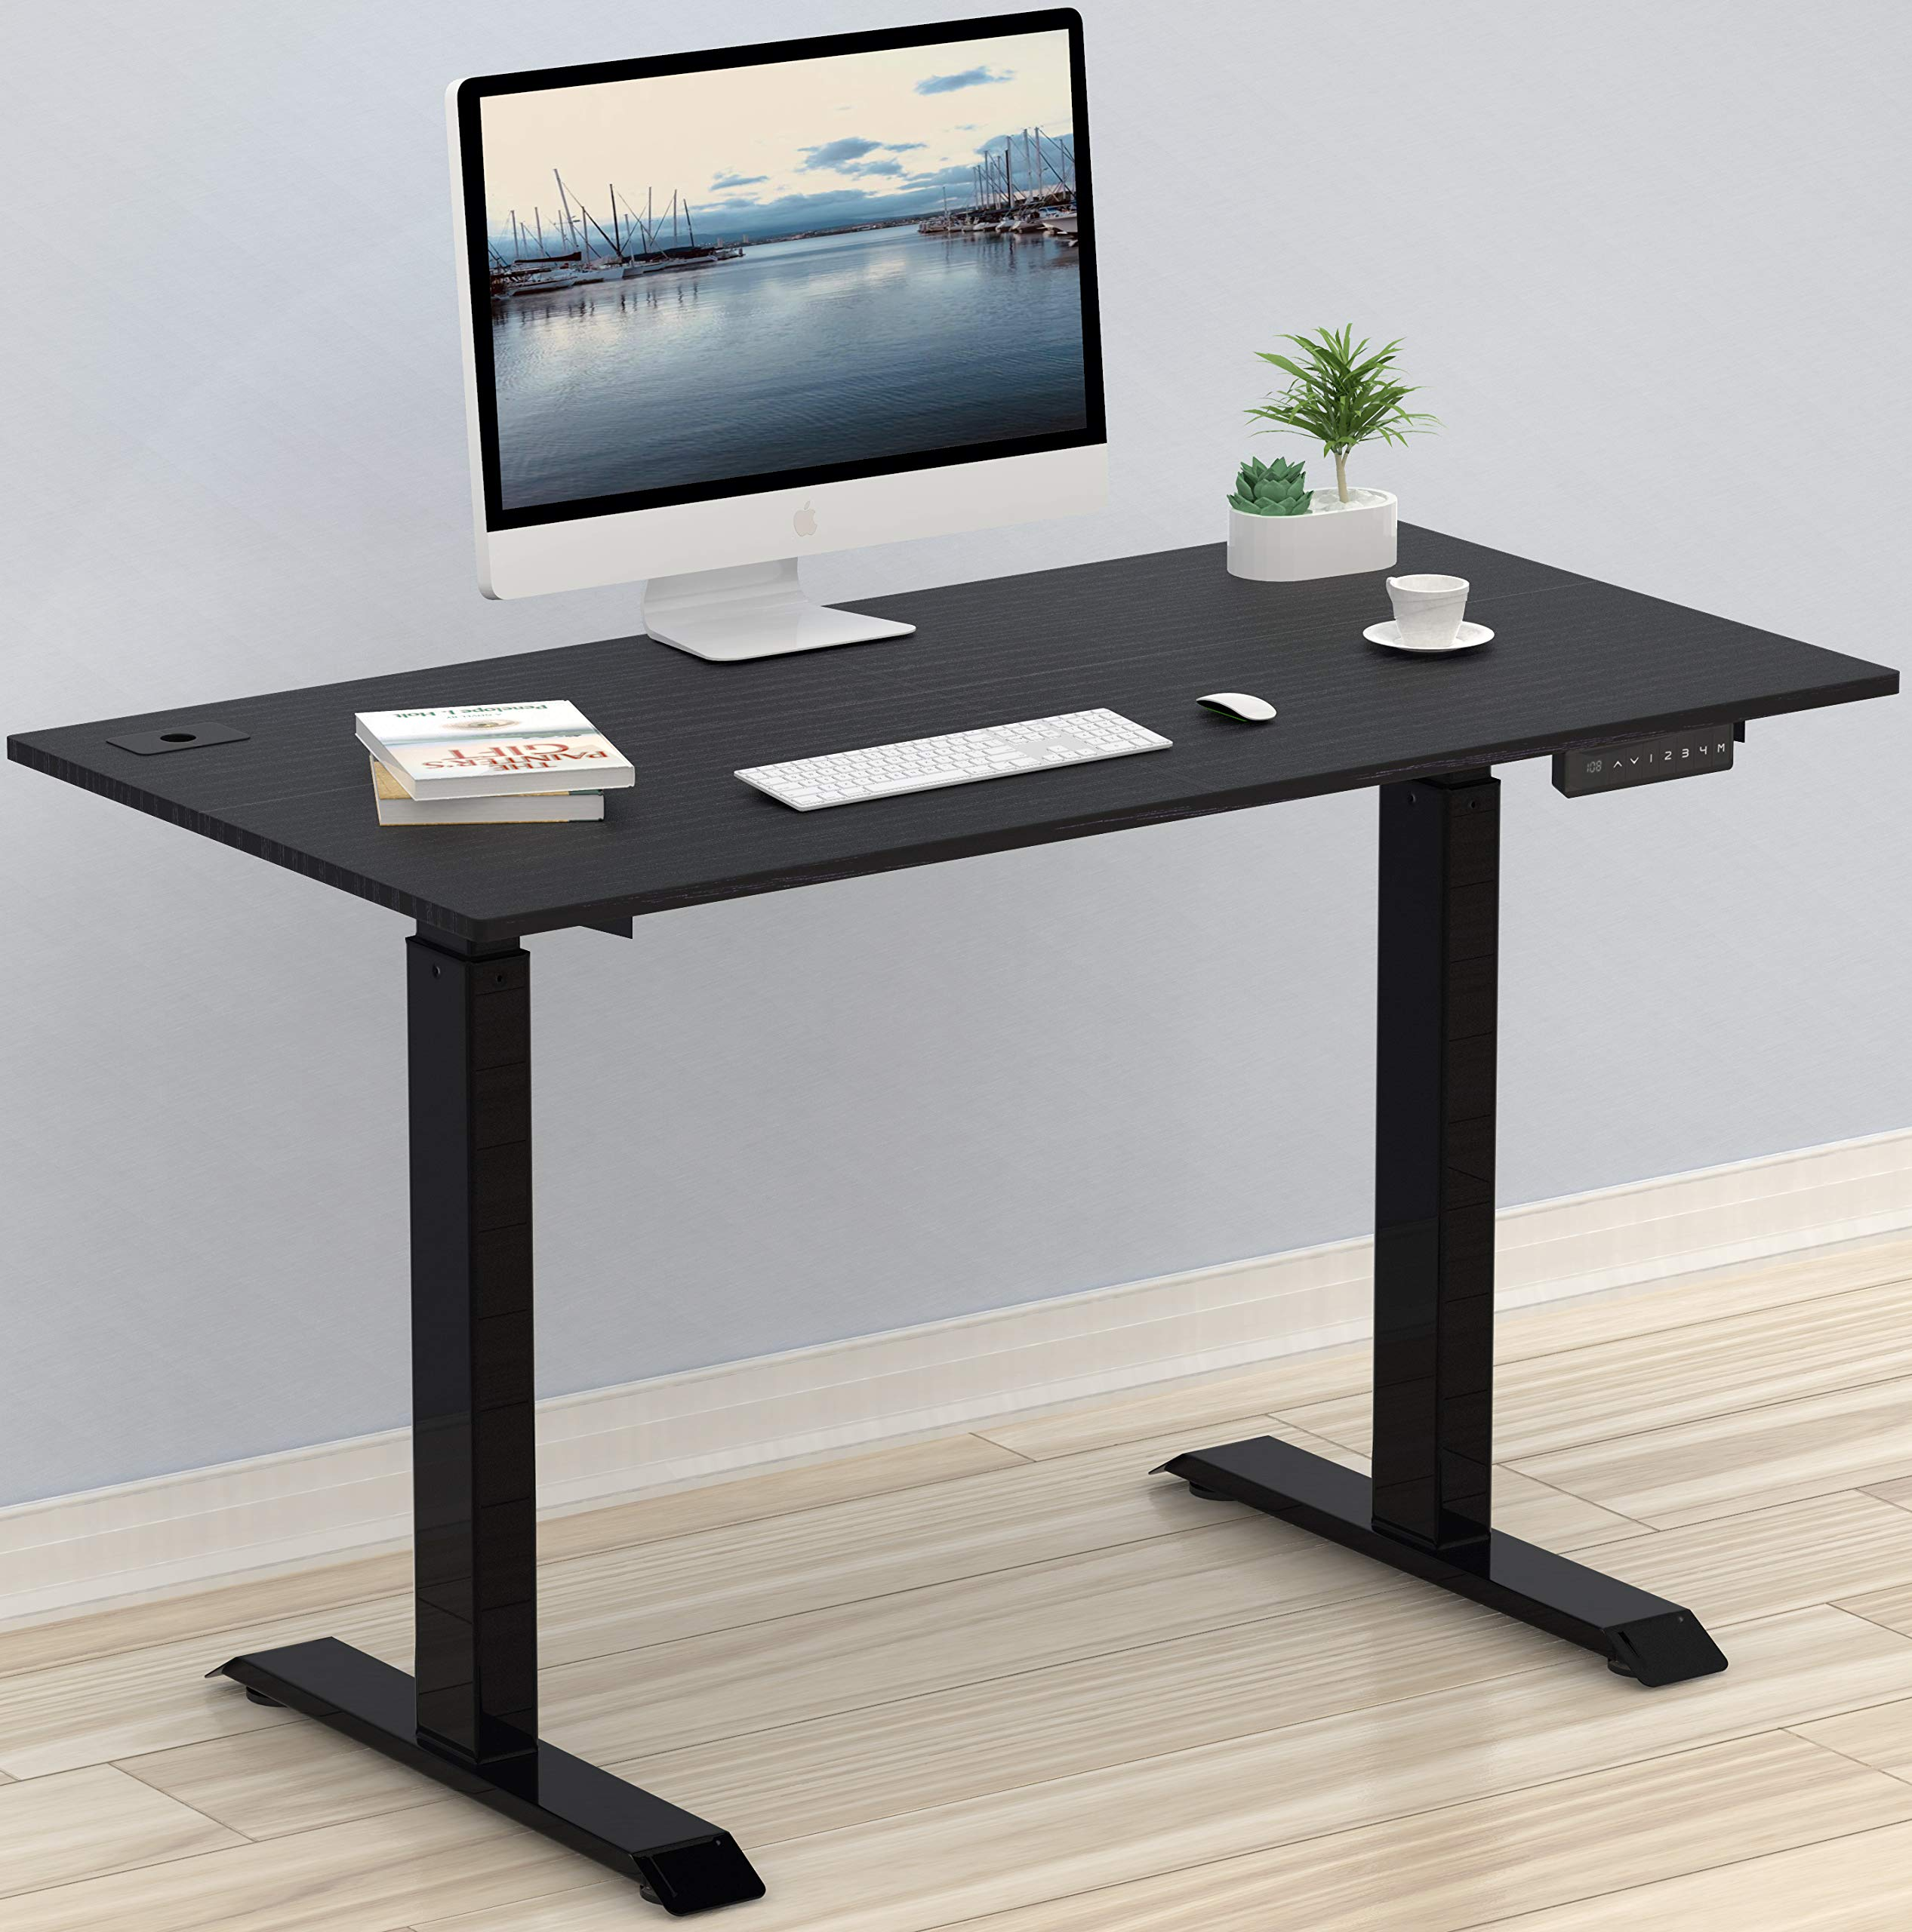 SHW Electric Height Adjustable Computer Desk, 48 x 24 Inches, Black by SHW